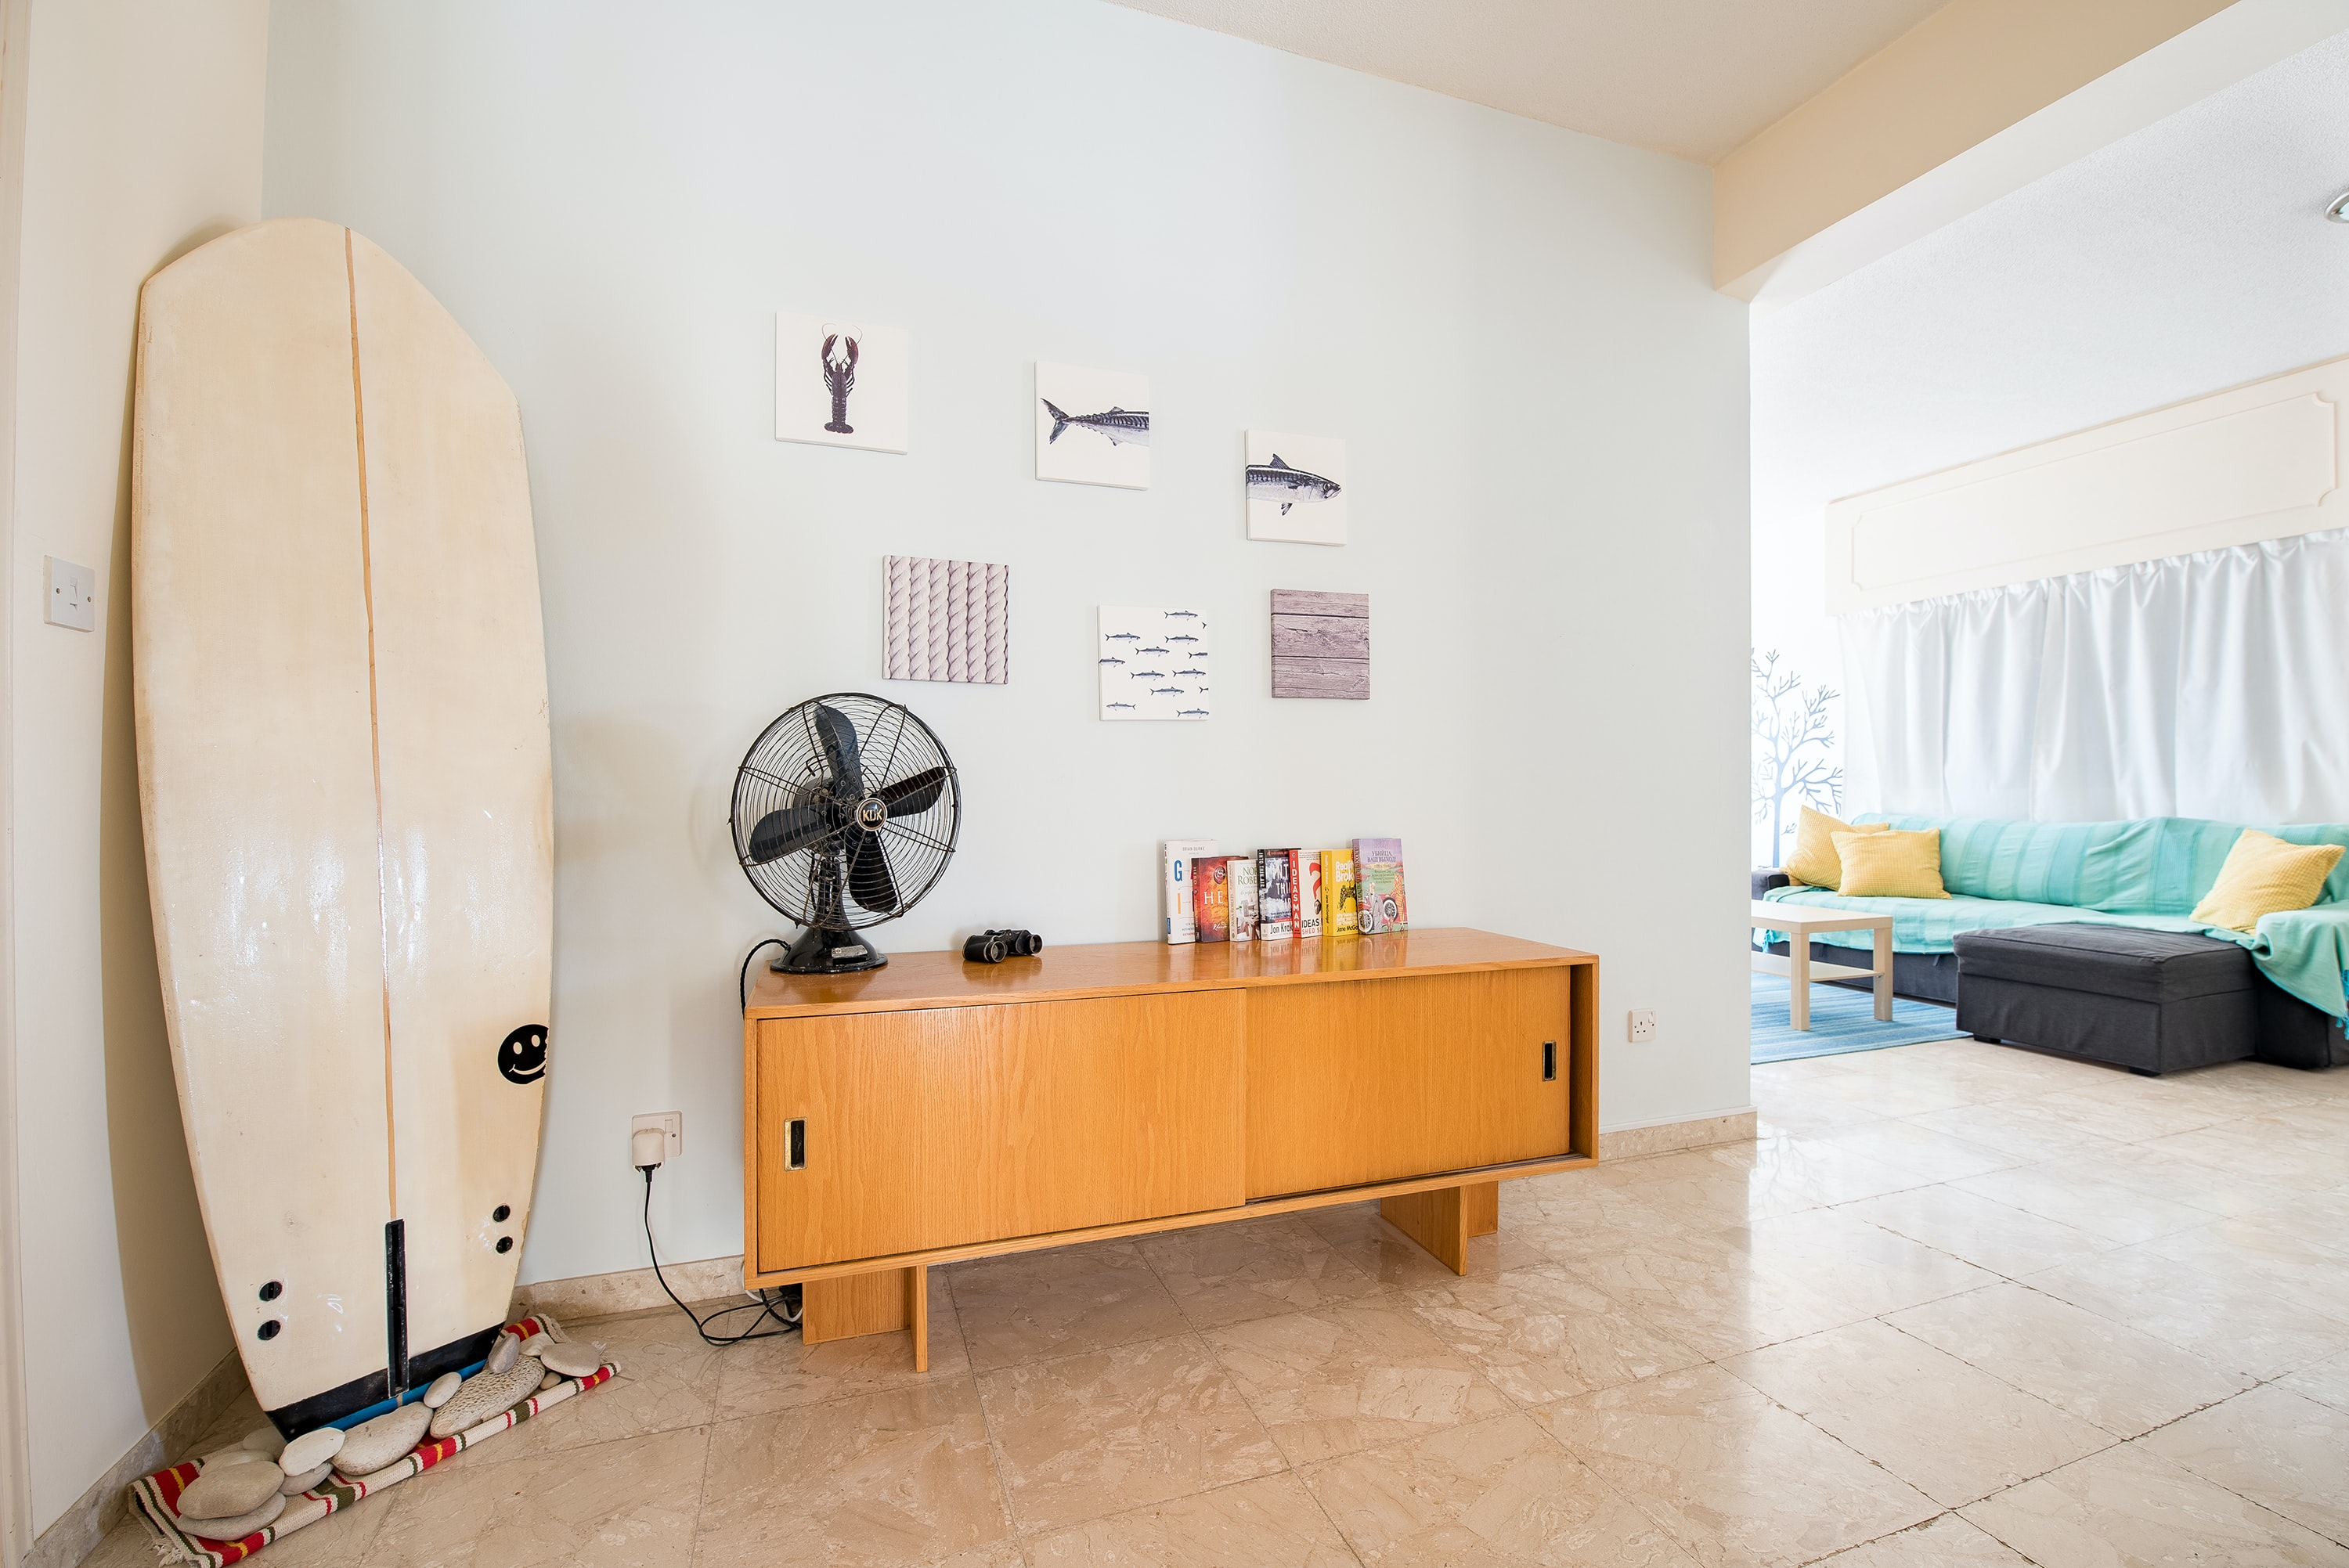 desk fan on credenza beside wall